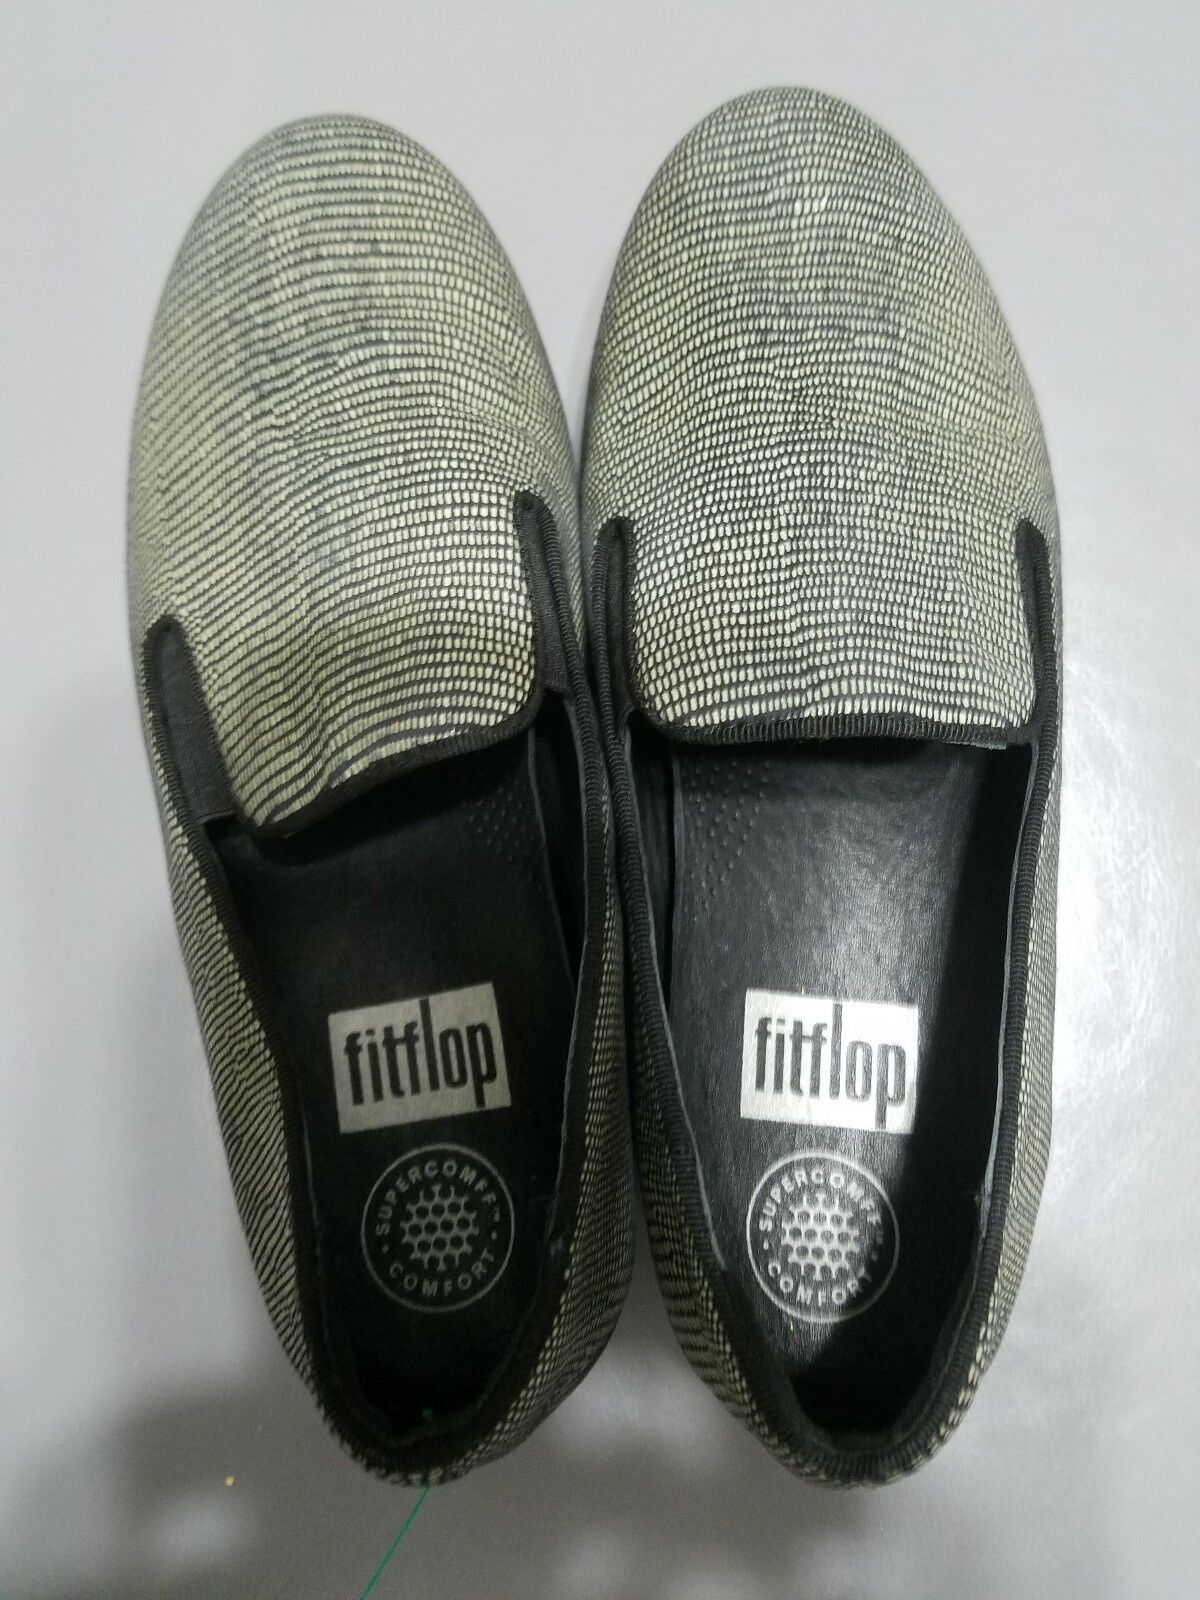 fitflop sunshade shoe excellent excellent shoe condition  5M 30e76d